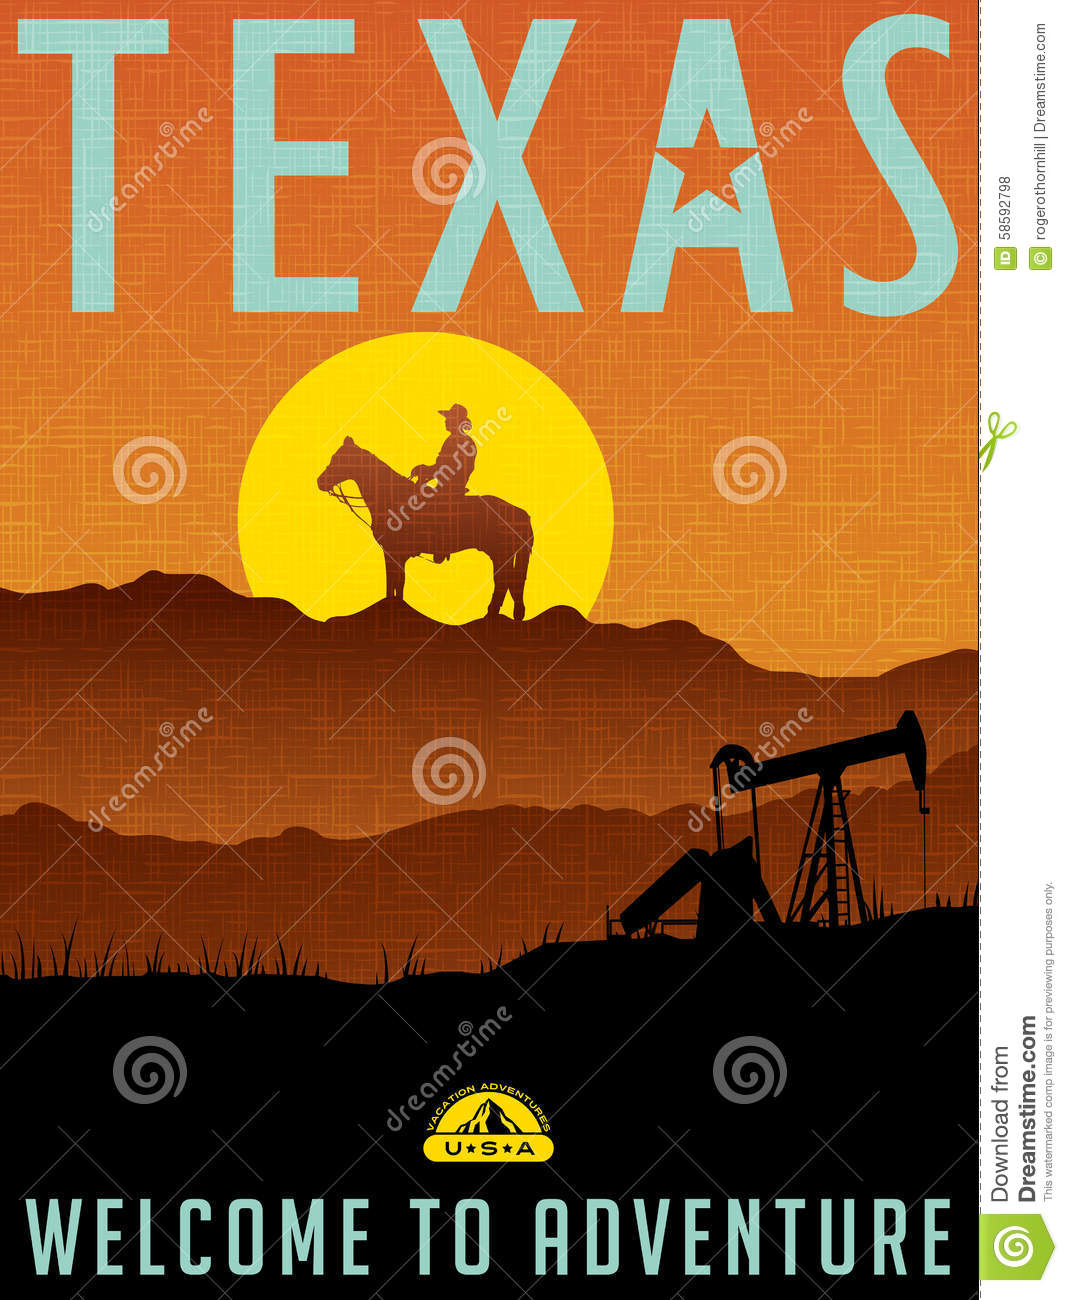 Retro Illustrated Travel Poster For Texas Stock Vector